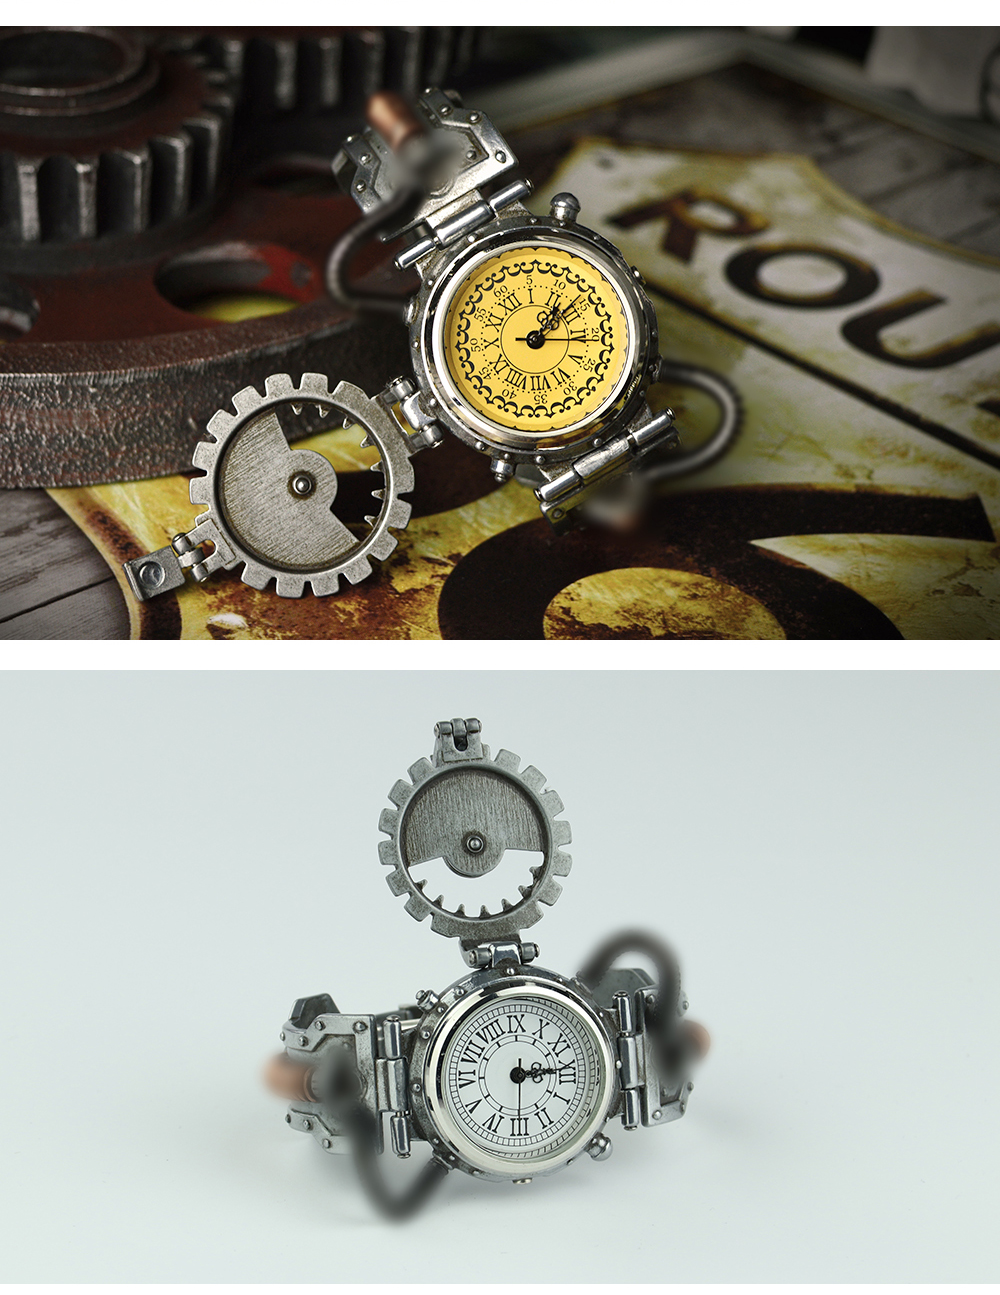 Topdudes.com - Retro Steampunk Wristwatch